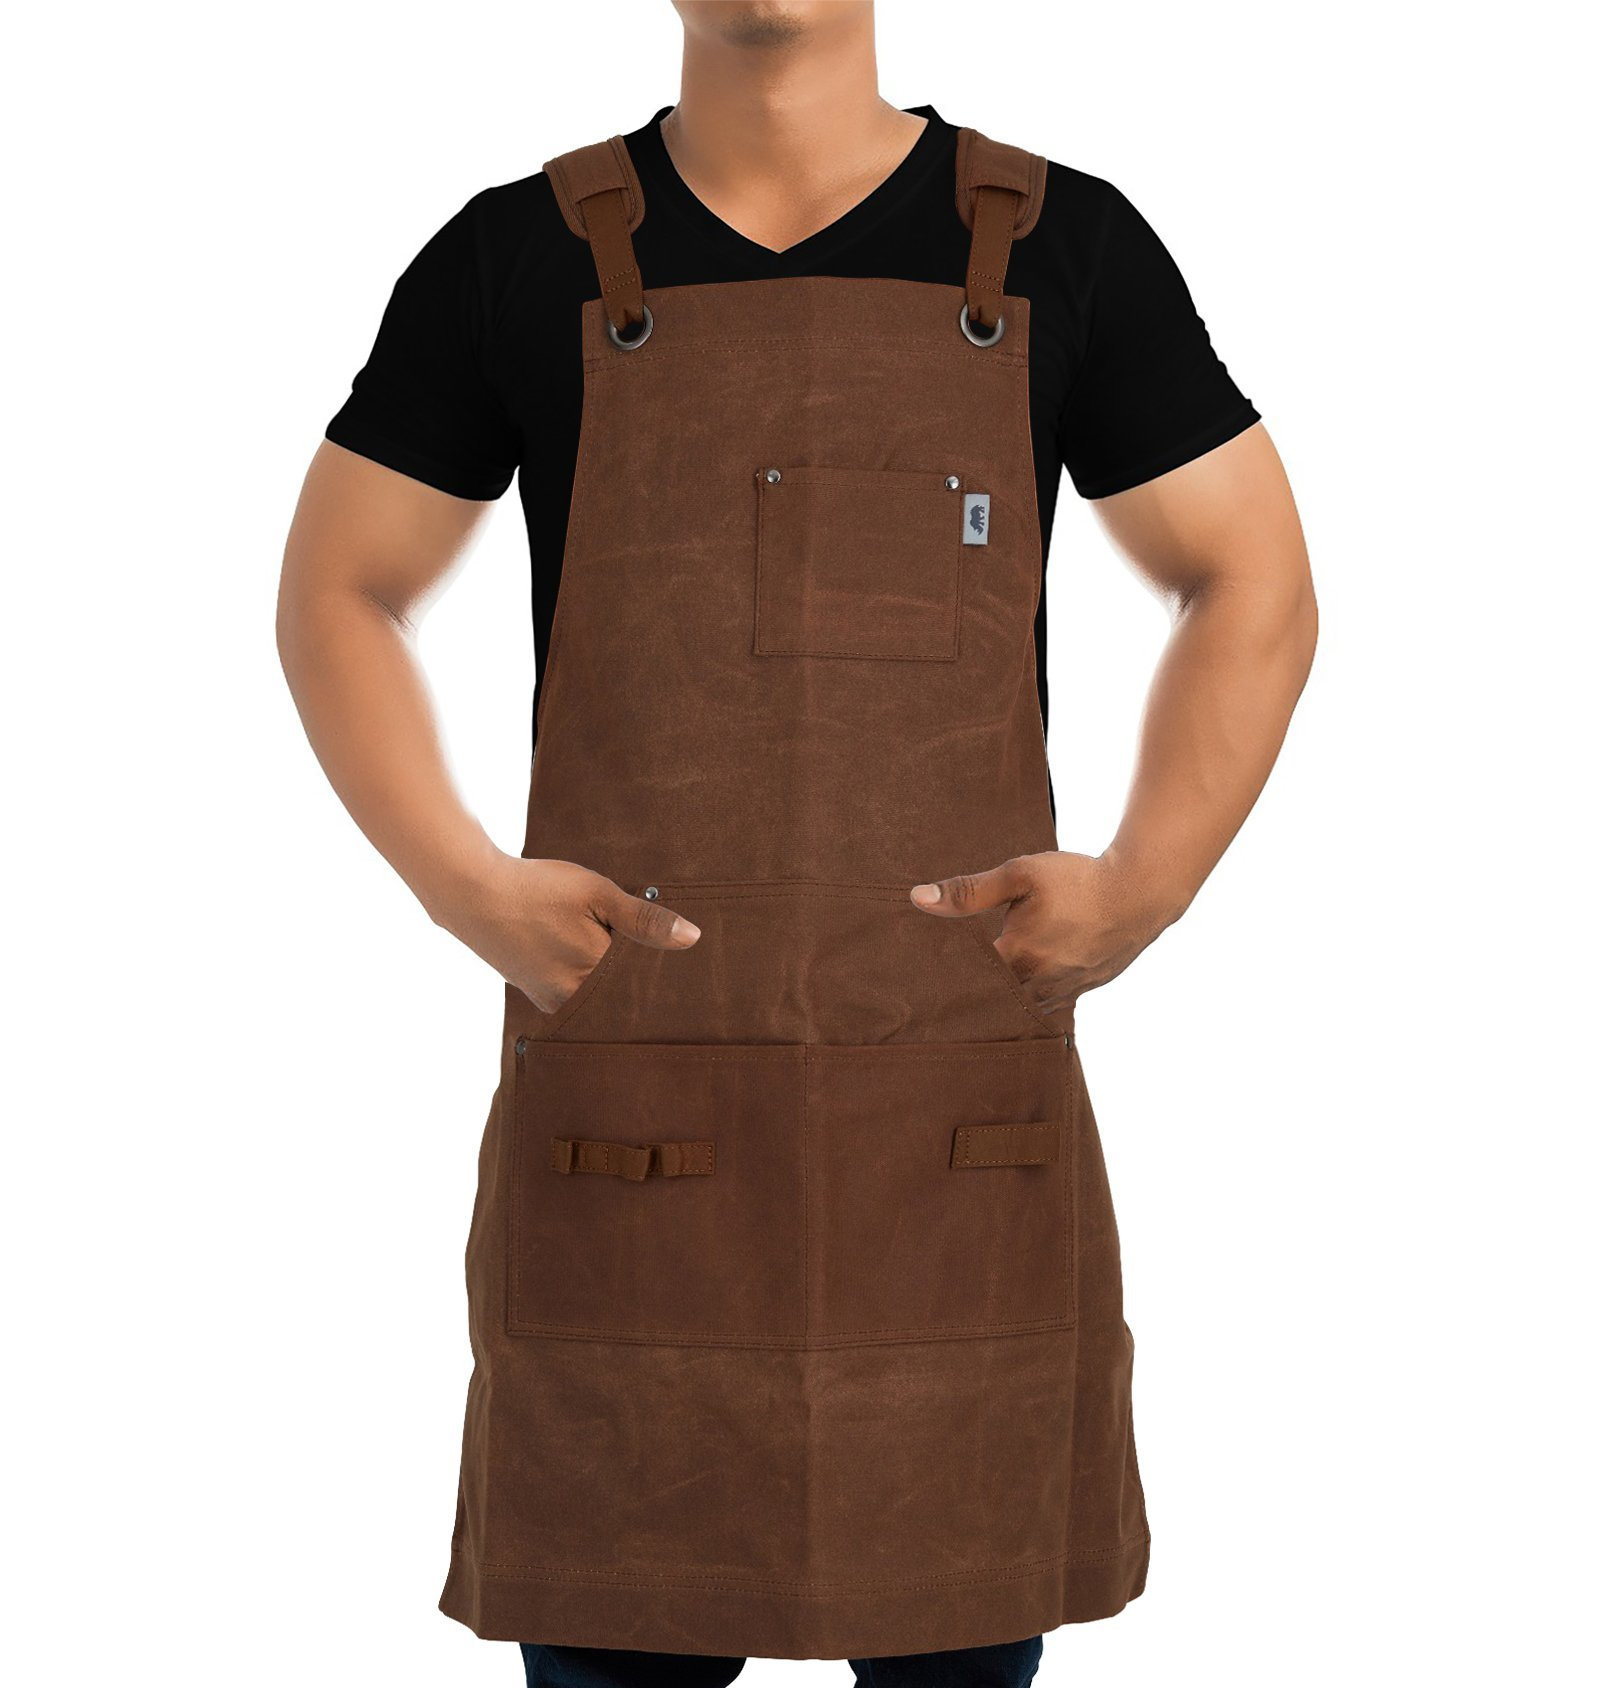 Heavy-Duty Waxed-Canvas Work Apron for Men and Women with Pockets for Tools Cross-Back Straps  – Adjustable from M to XXL (Brown) by Premium Rhino (Image #1)